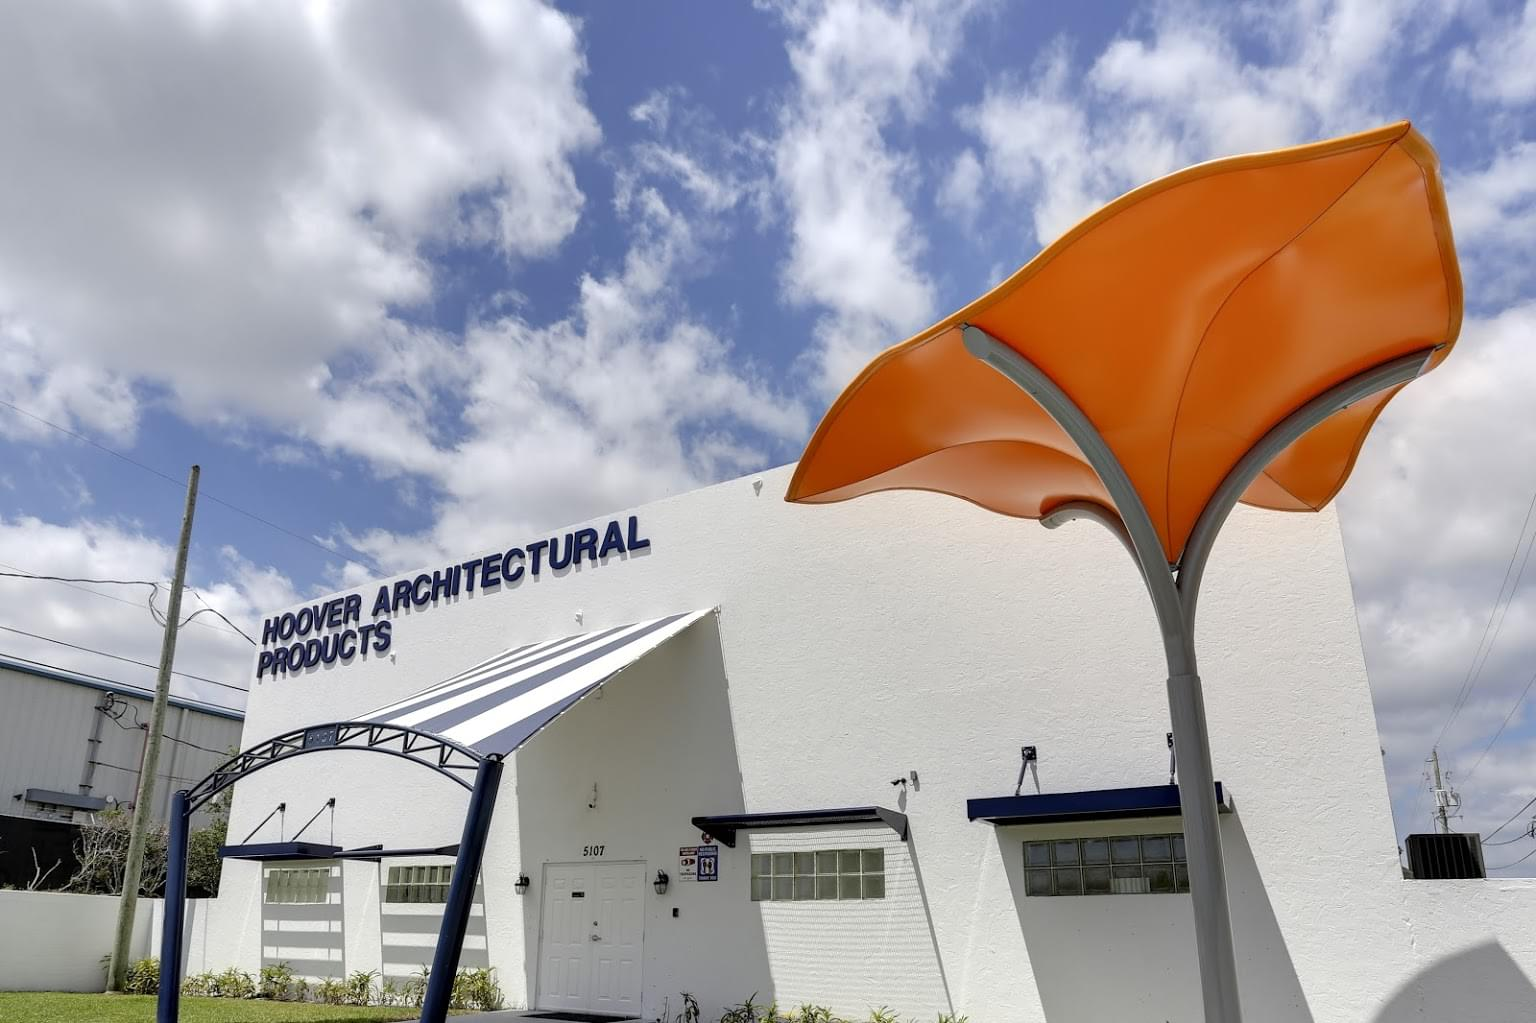 Hoover Architectural Products – West Palm Beach, FL – See-Inside Awning supplier